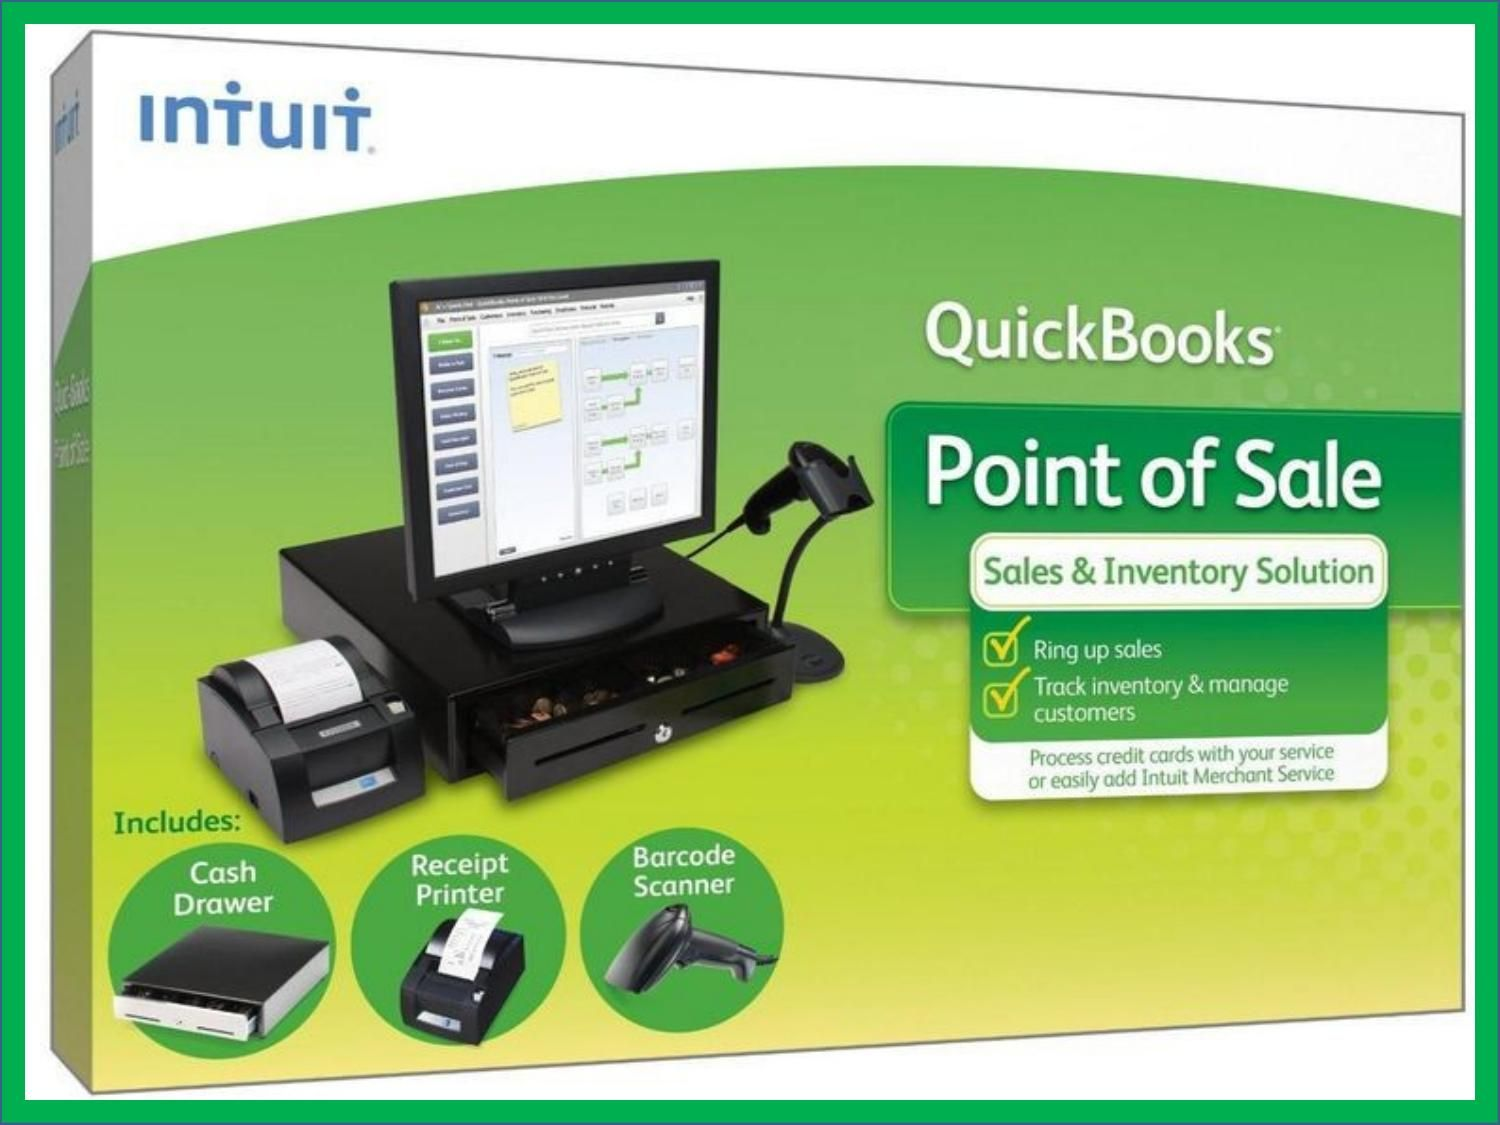 QuickBooks Point of Sale | Point of Sale | Point of sale